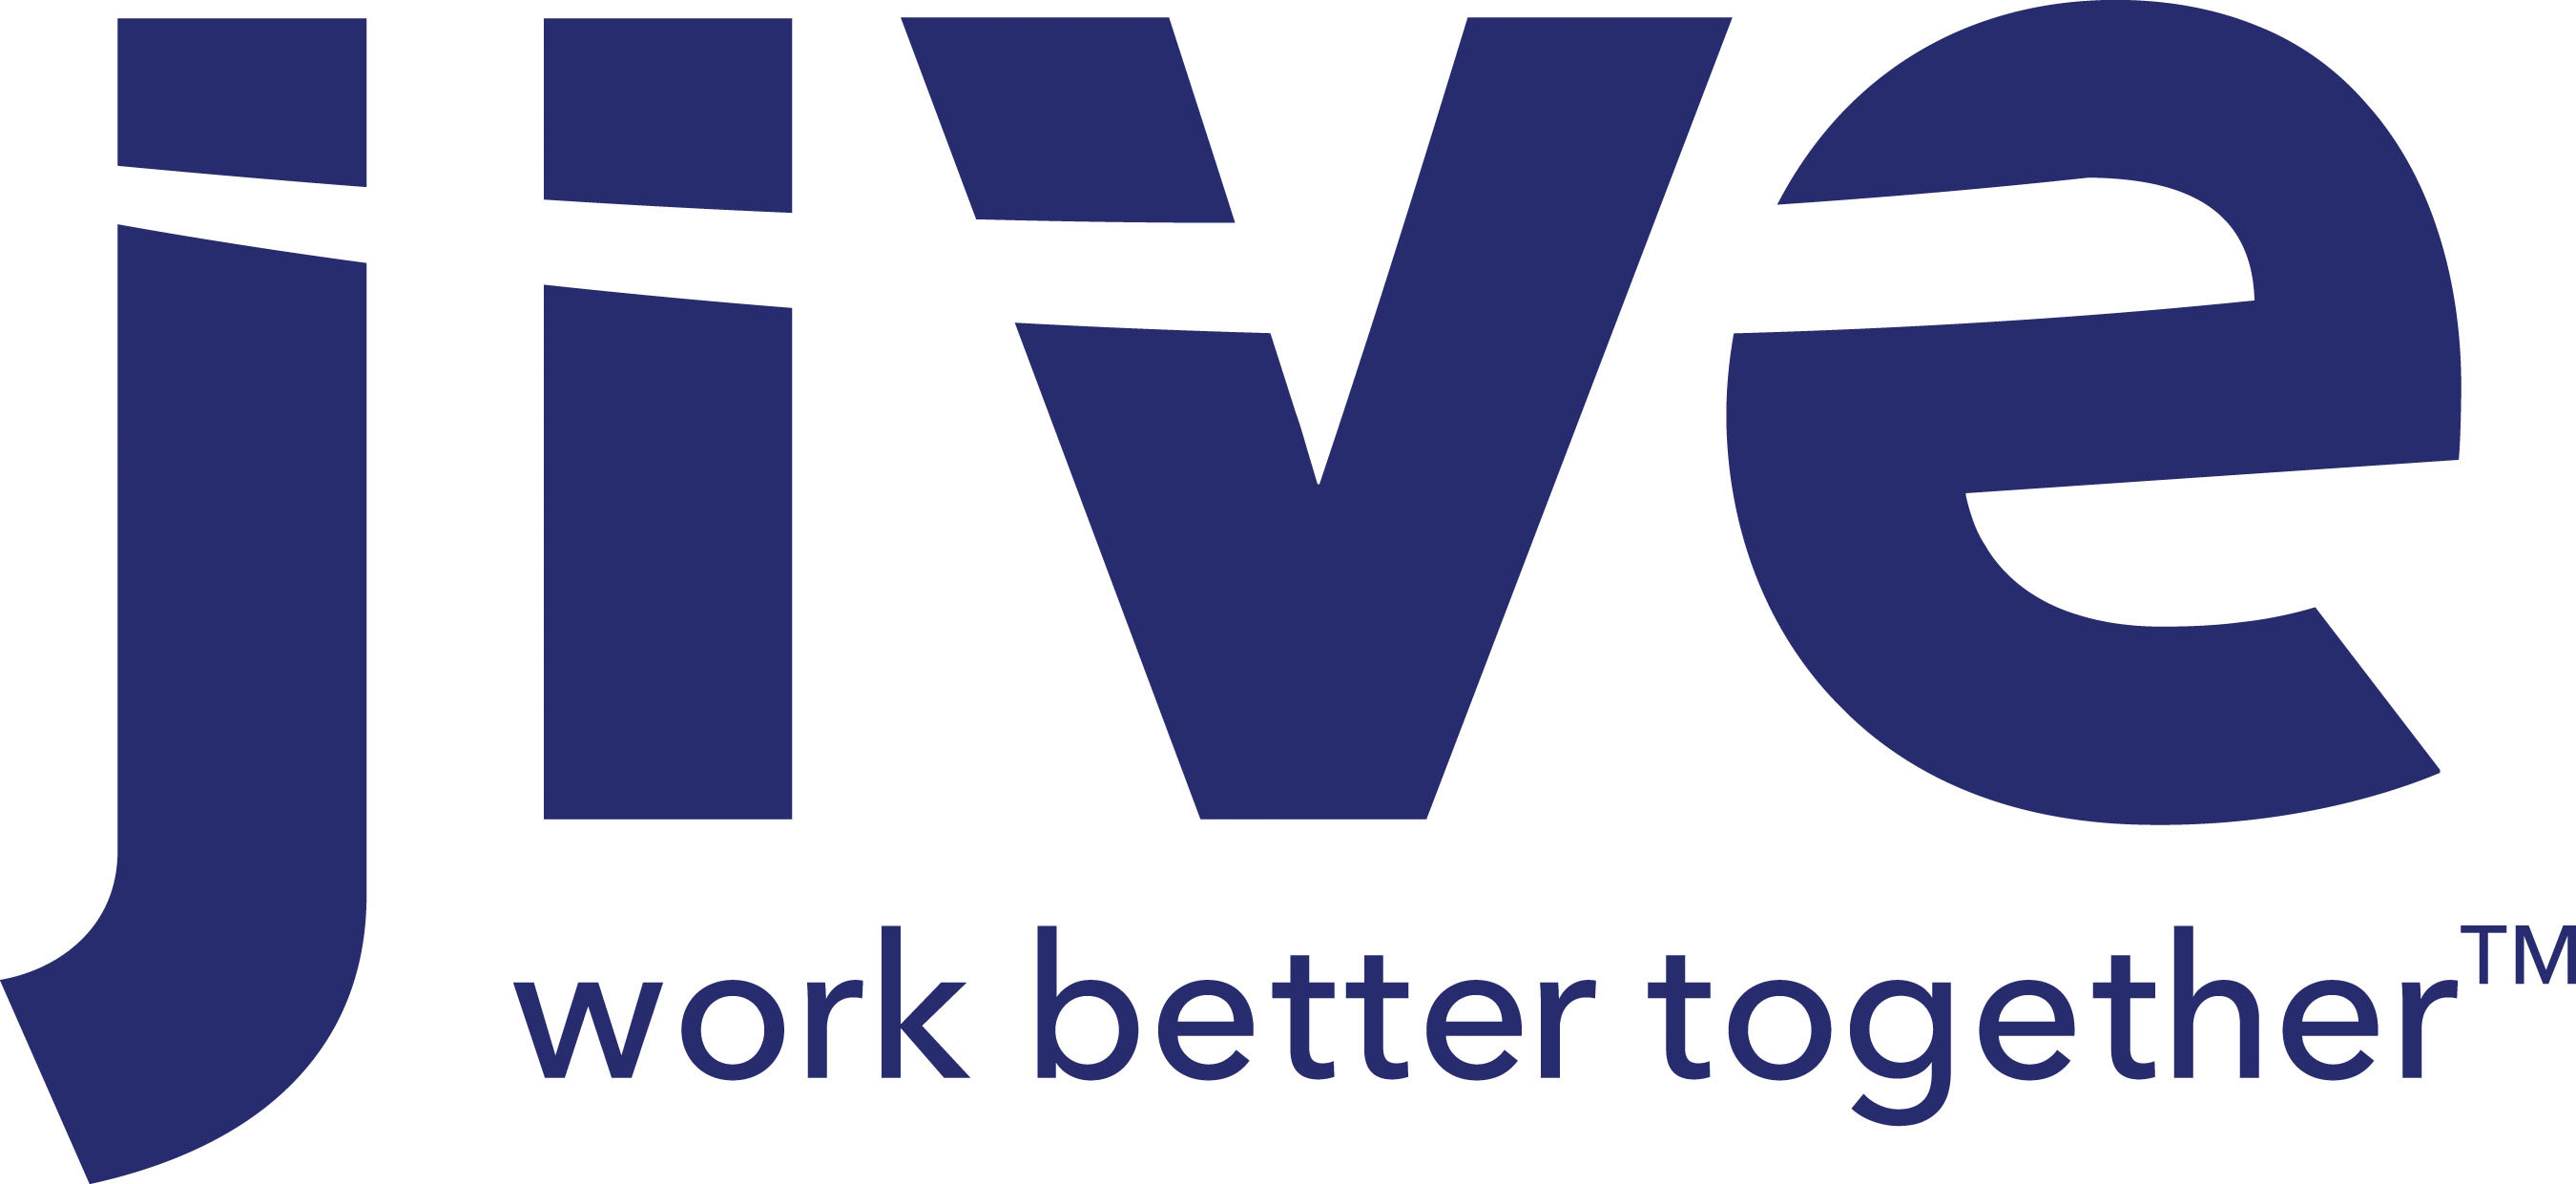 @jivesoftware ~ working better together